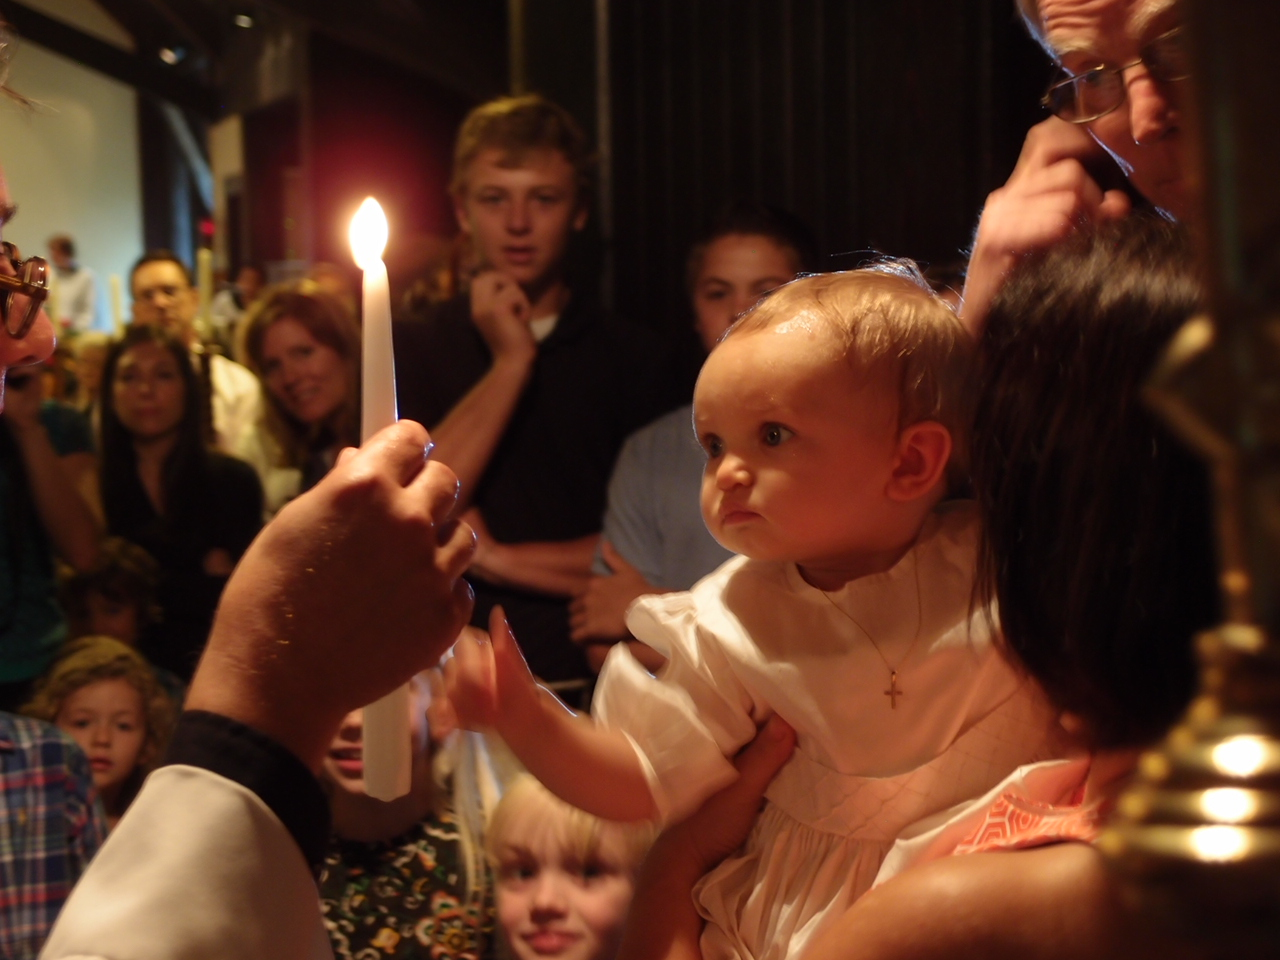 Image result for child smiling being baptized